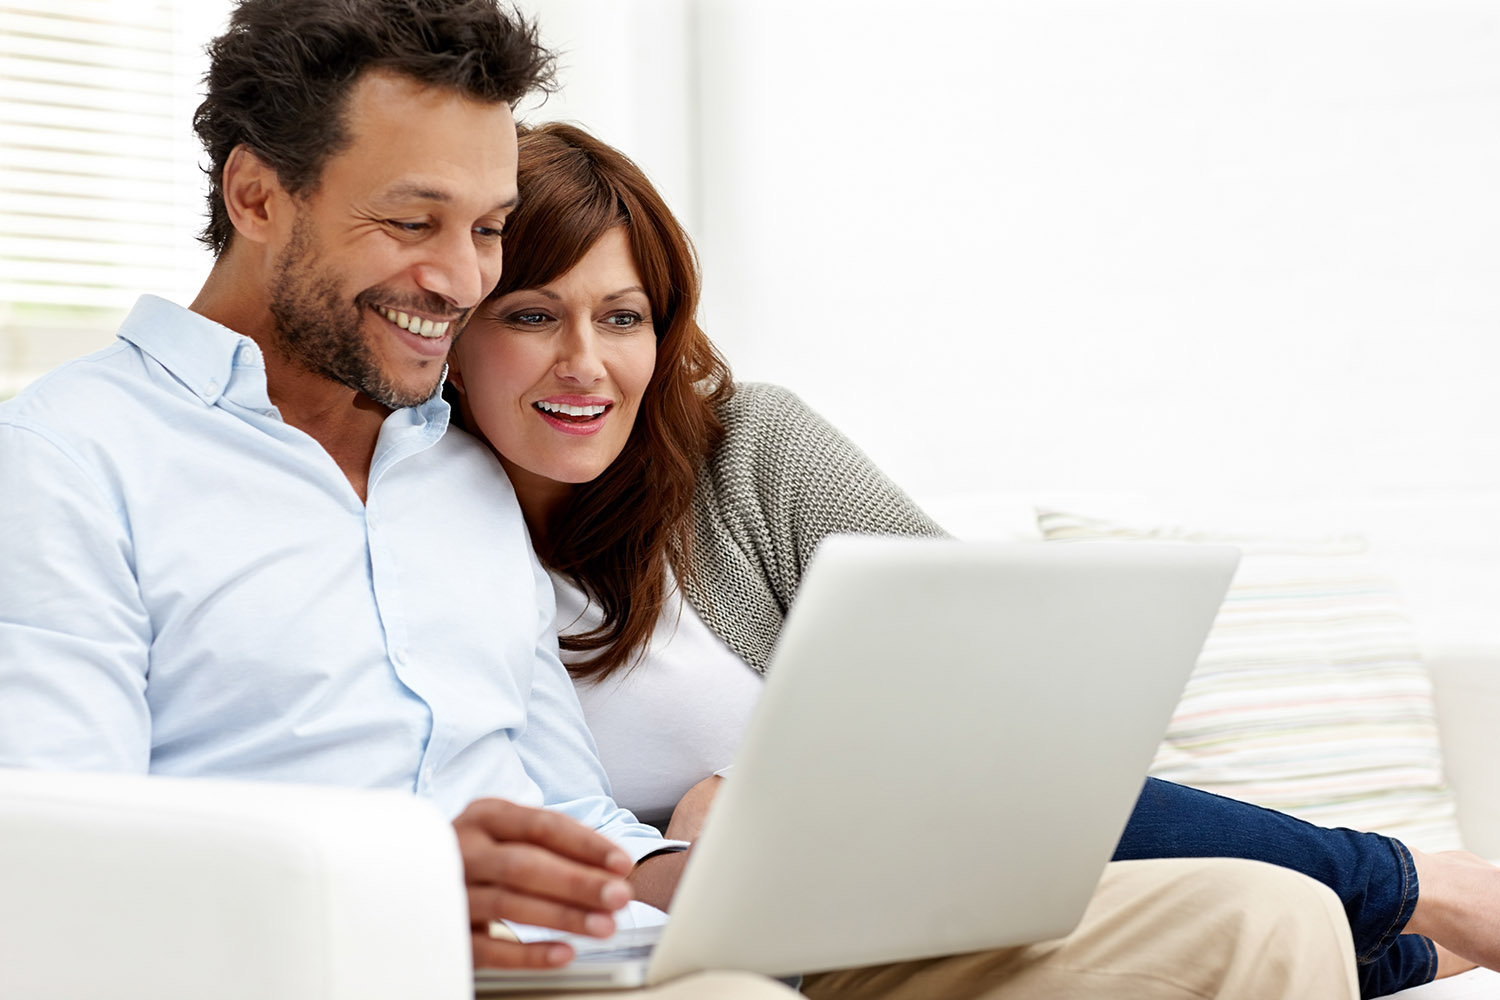 Happy couple together on couch with laptop